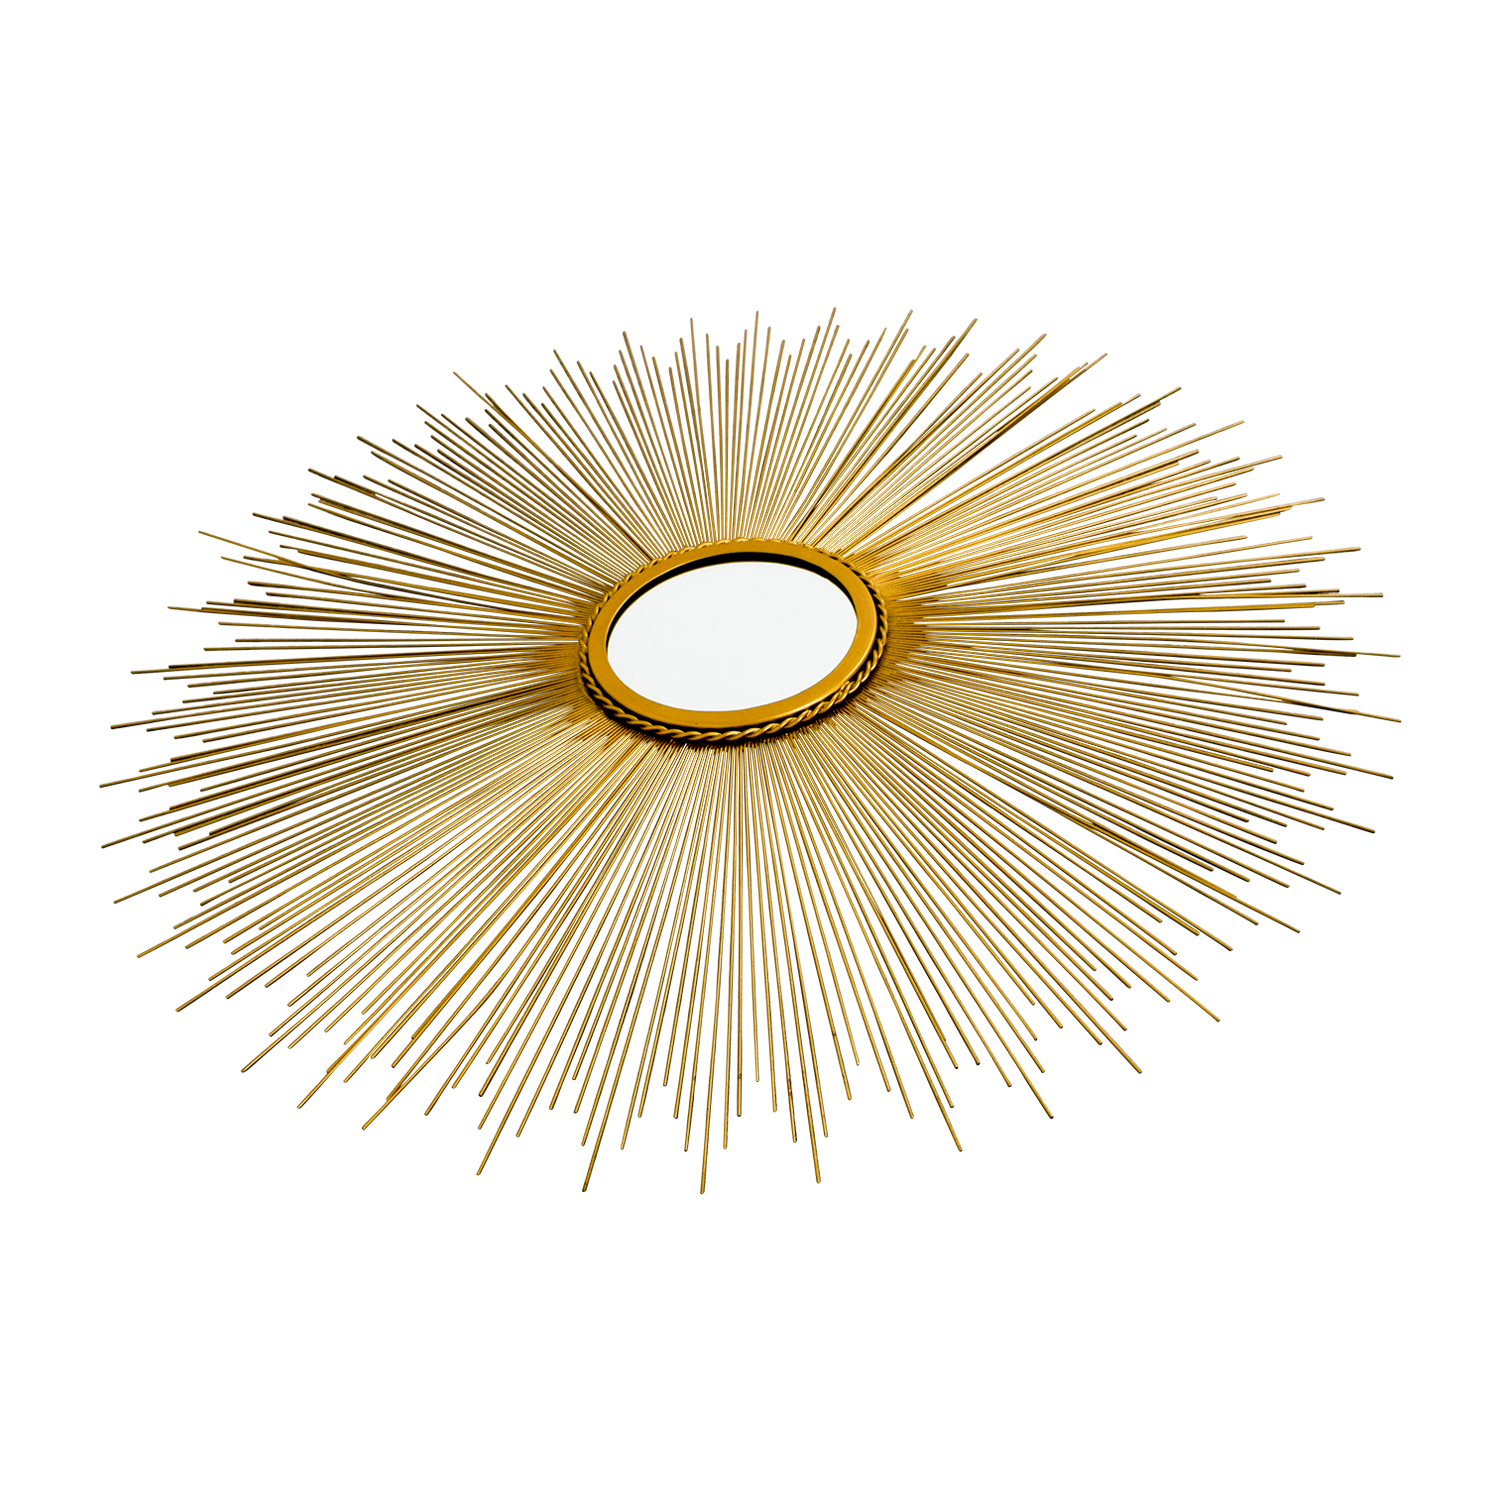 buy Safavieh Gold Sunburst Mirror Safavieh Decor